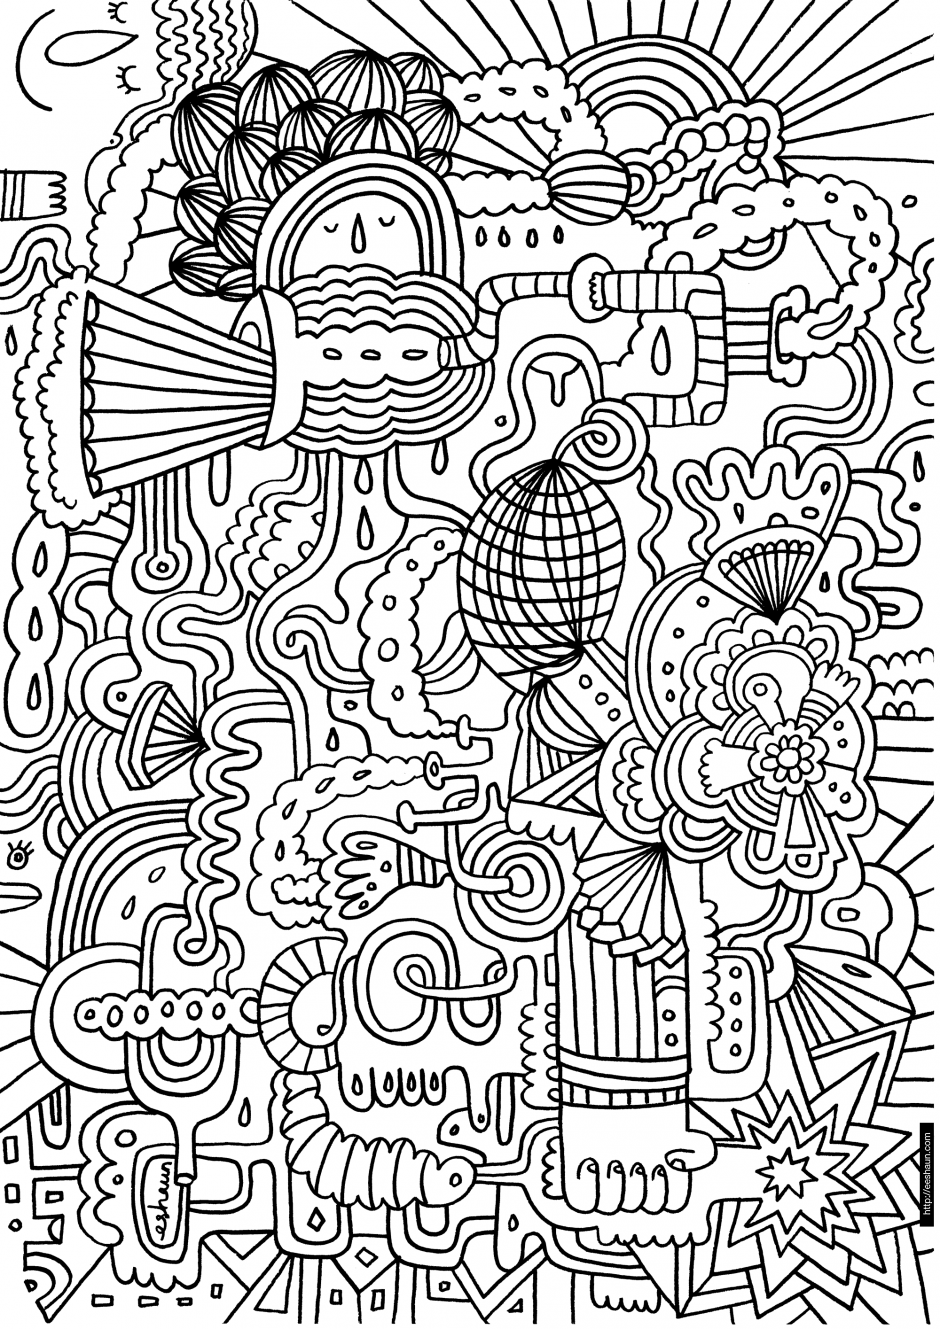 coloring pages difficult hard coloring pages for adults best coloring pages for kids coloring pages difficult